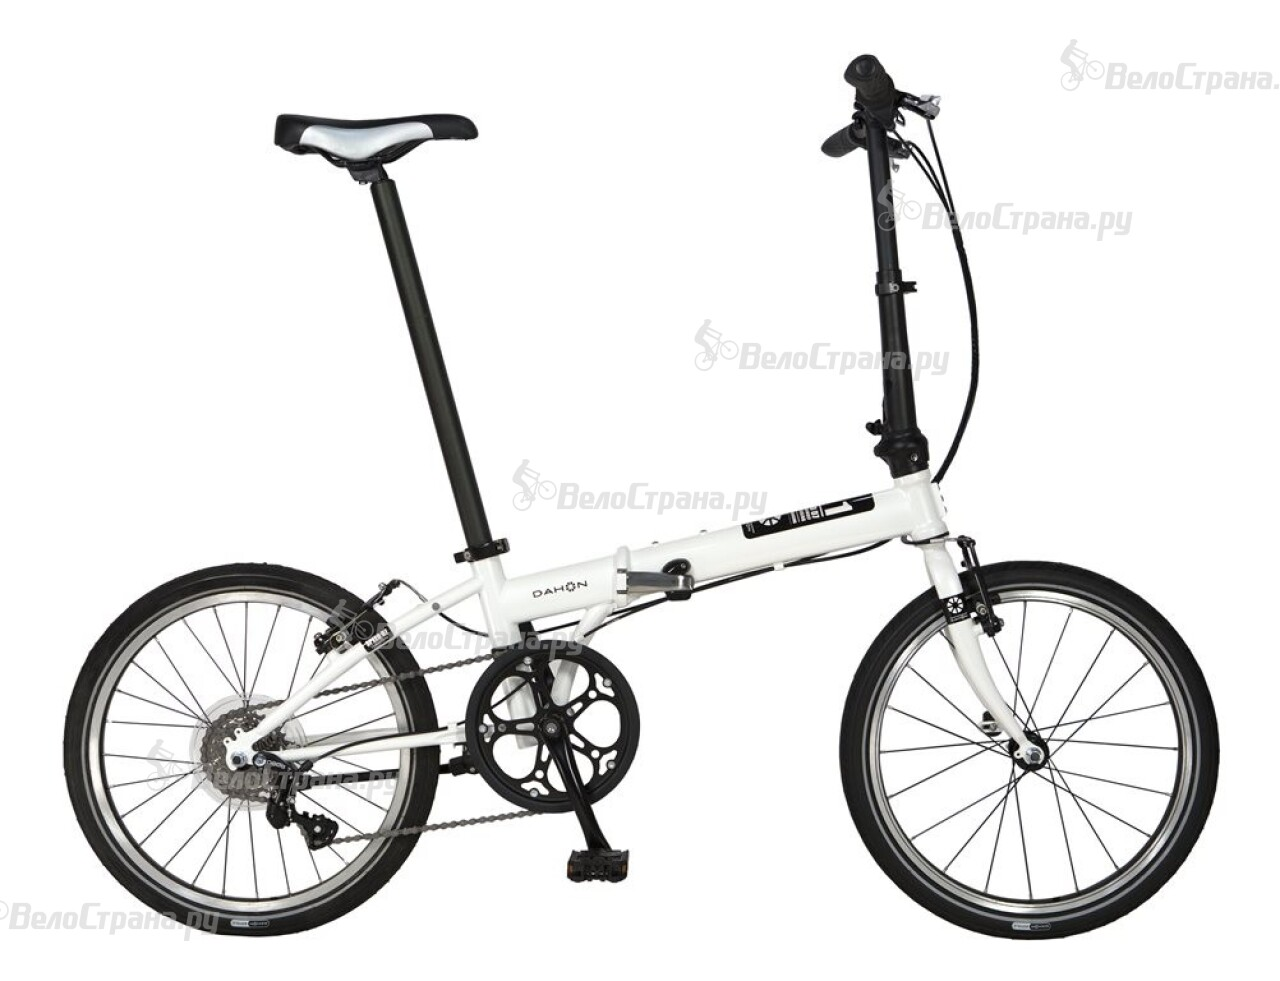 Велосипед Dahon Speed D7 (2014) used in good condition allen bradley panelview c400 2711c t4t ser a with free dhl ems